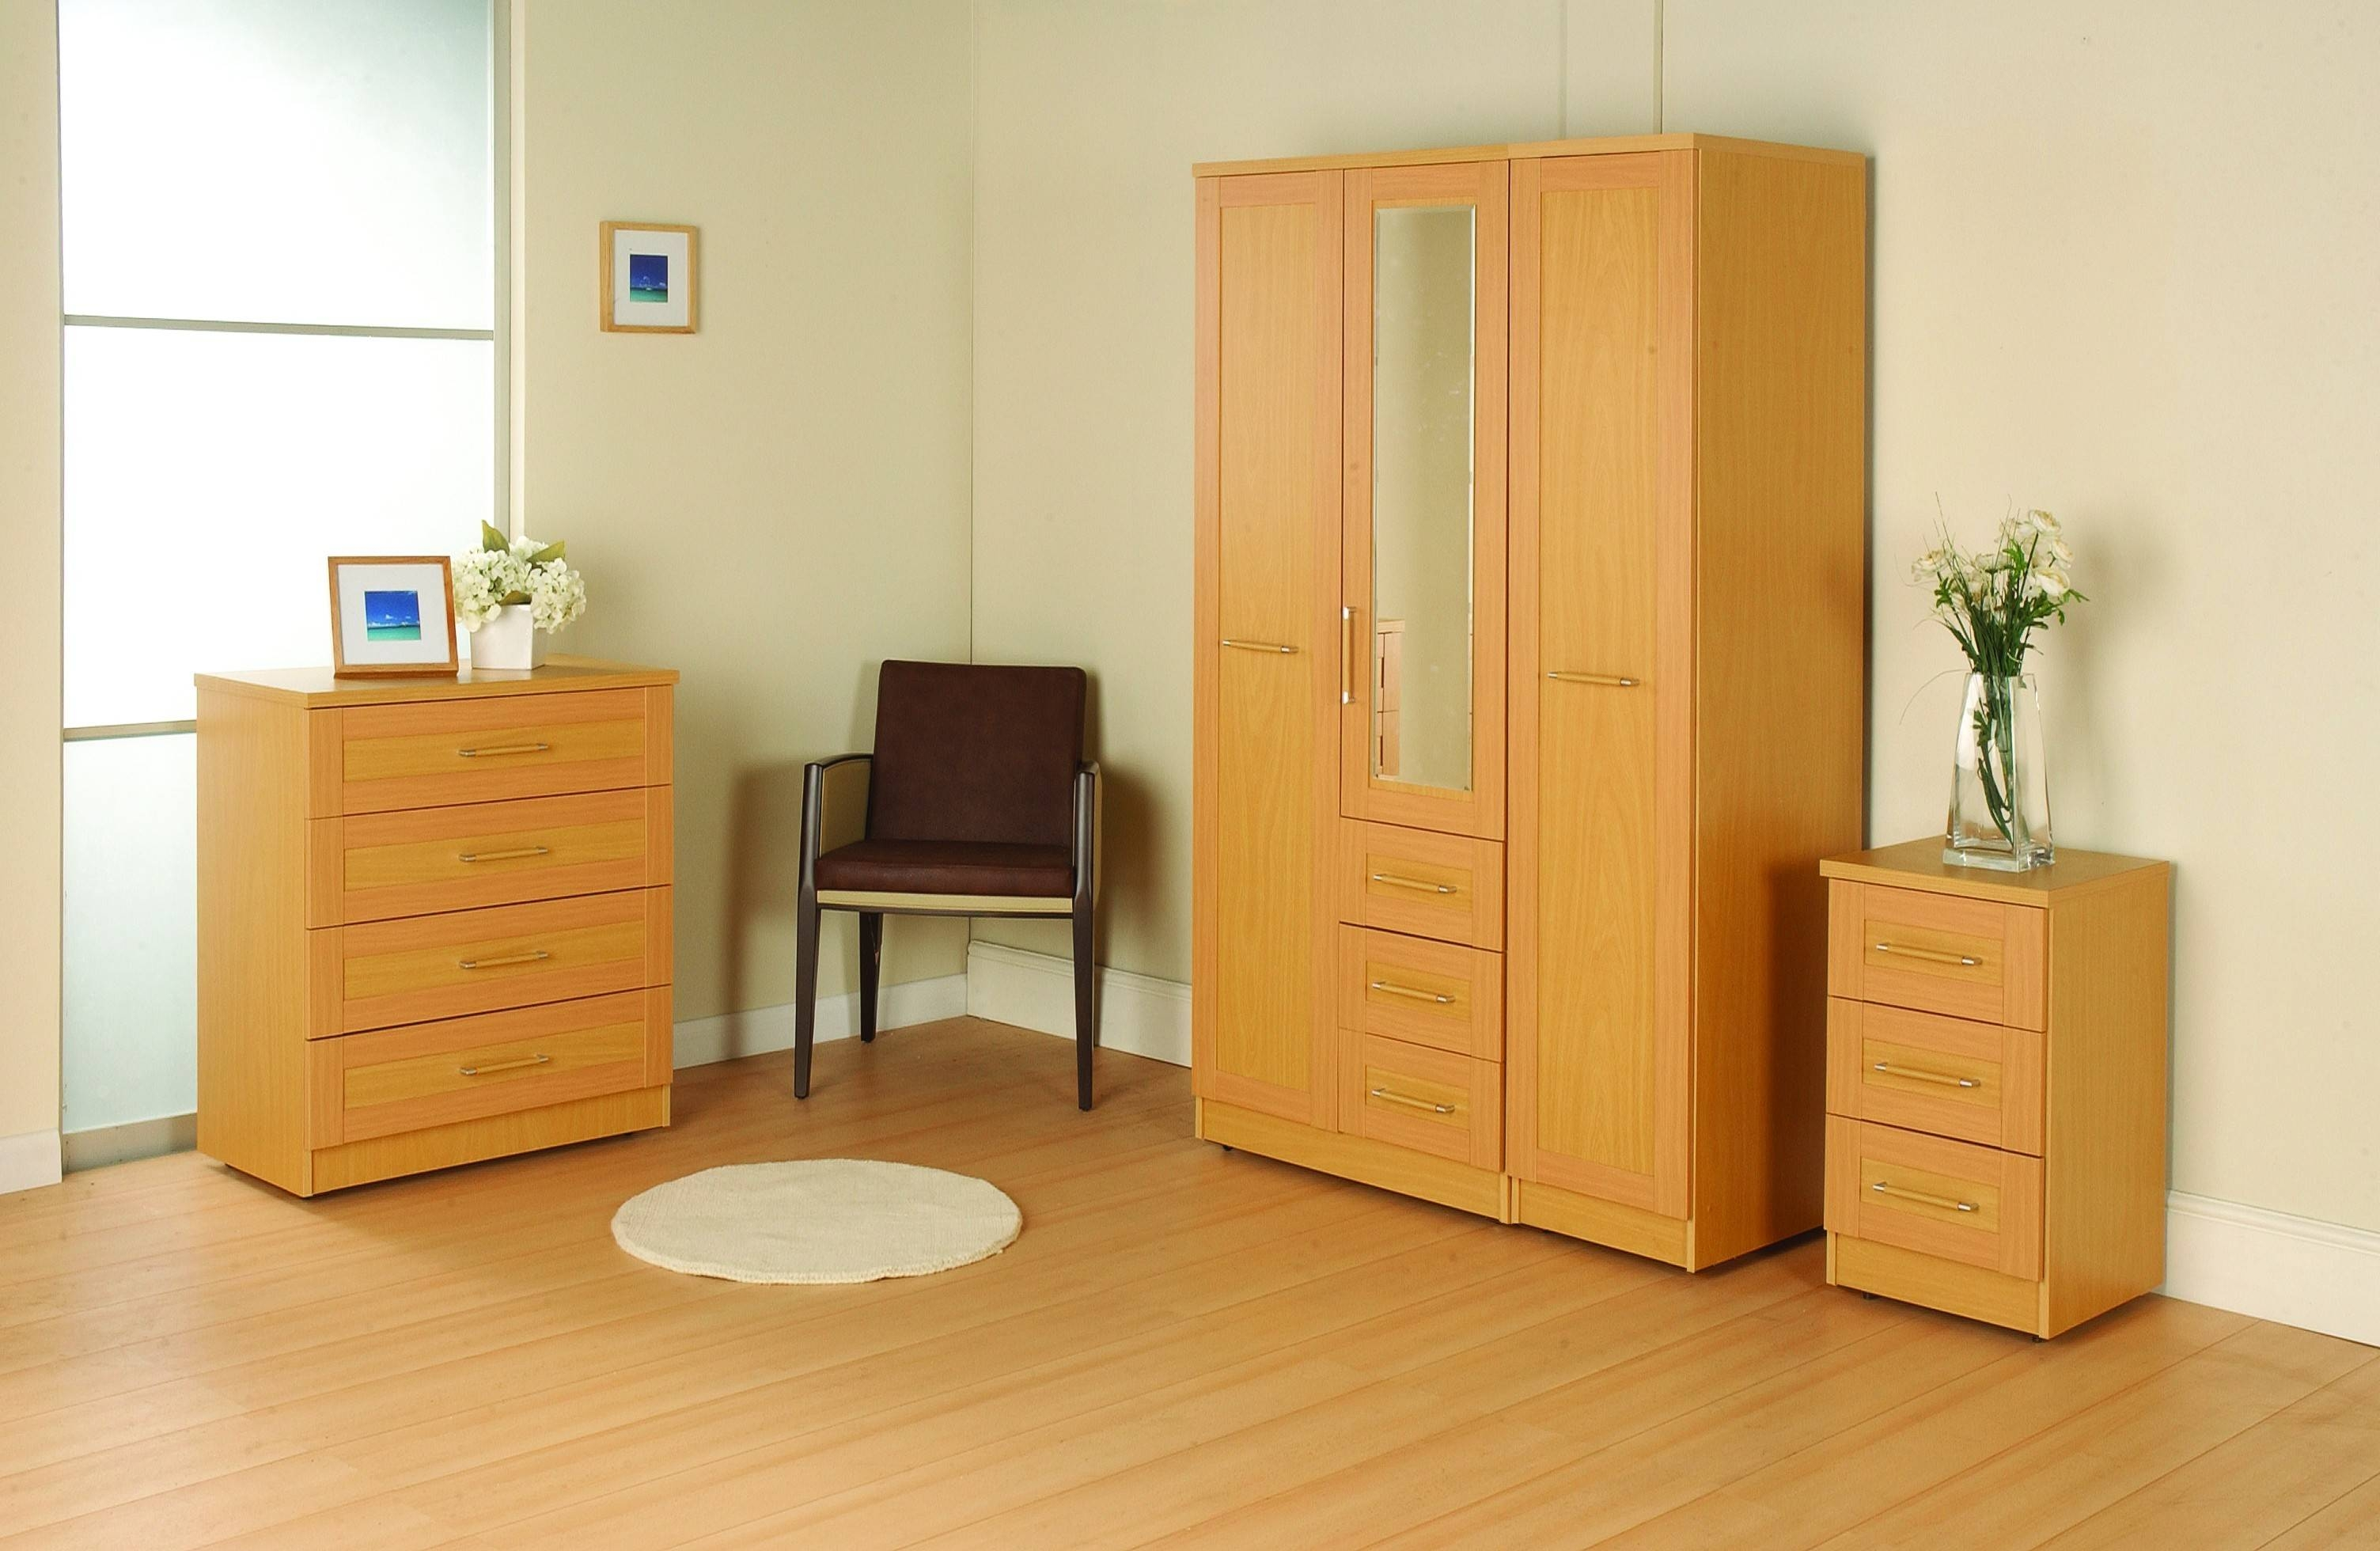 Adams Furniture Store - Bedroom intended for Chest of Drawers Wardrobes Combination (Image 2 of 15)